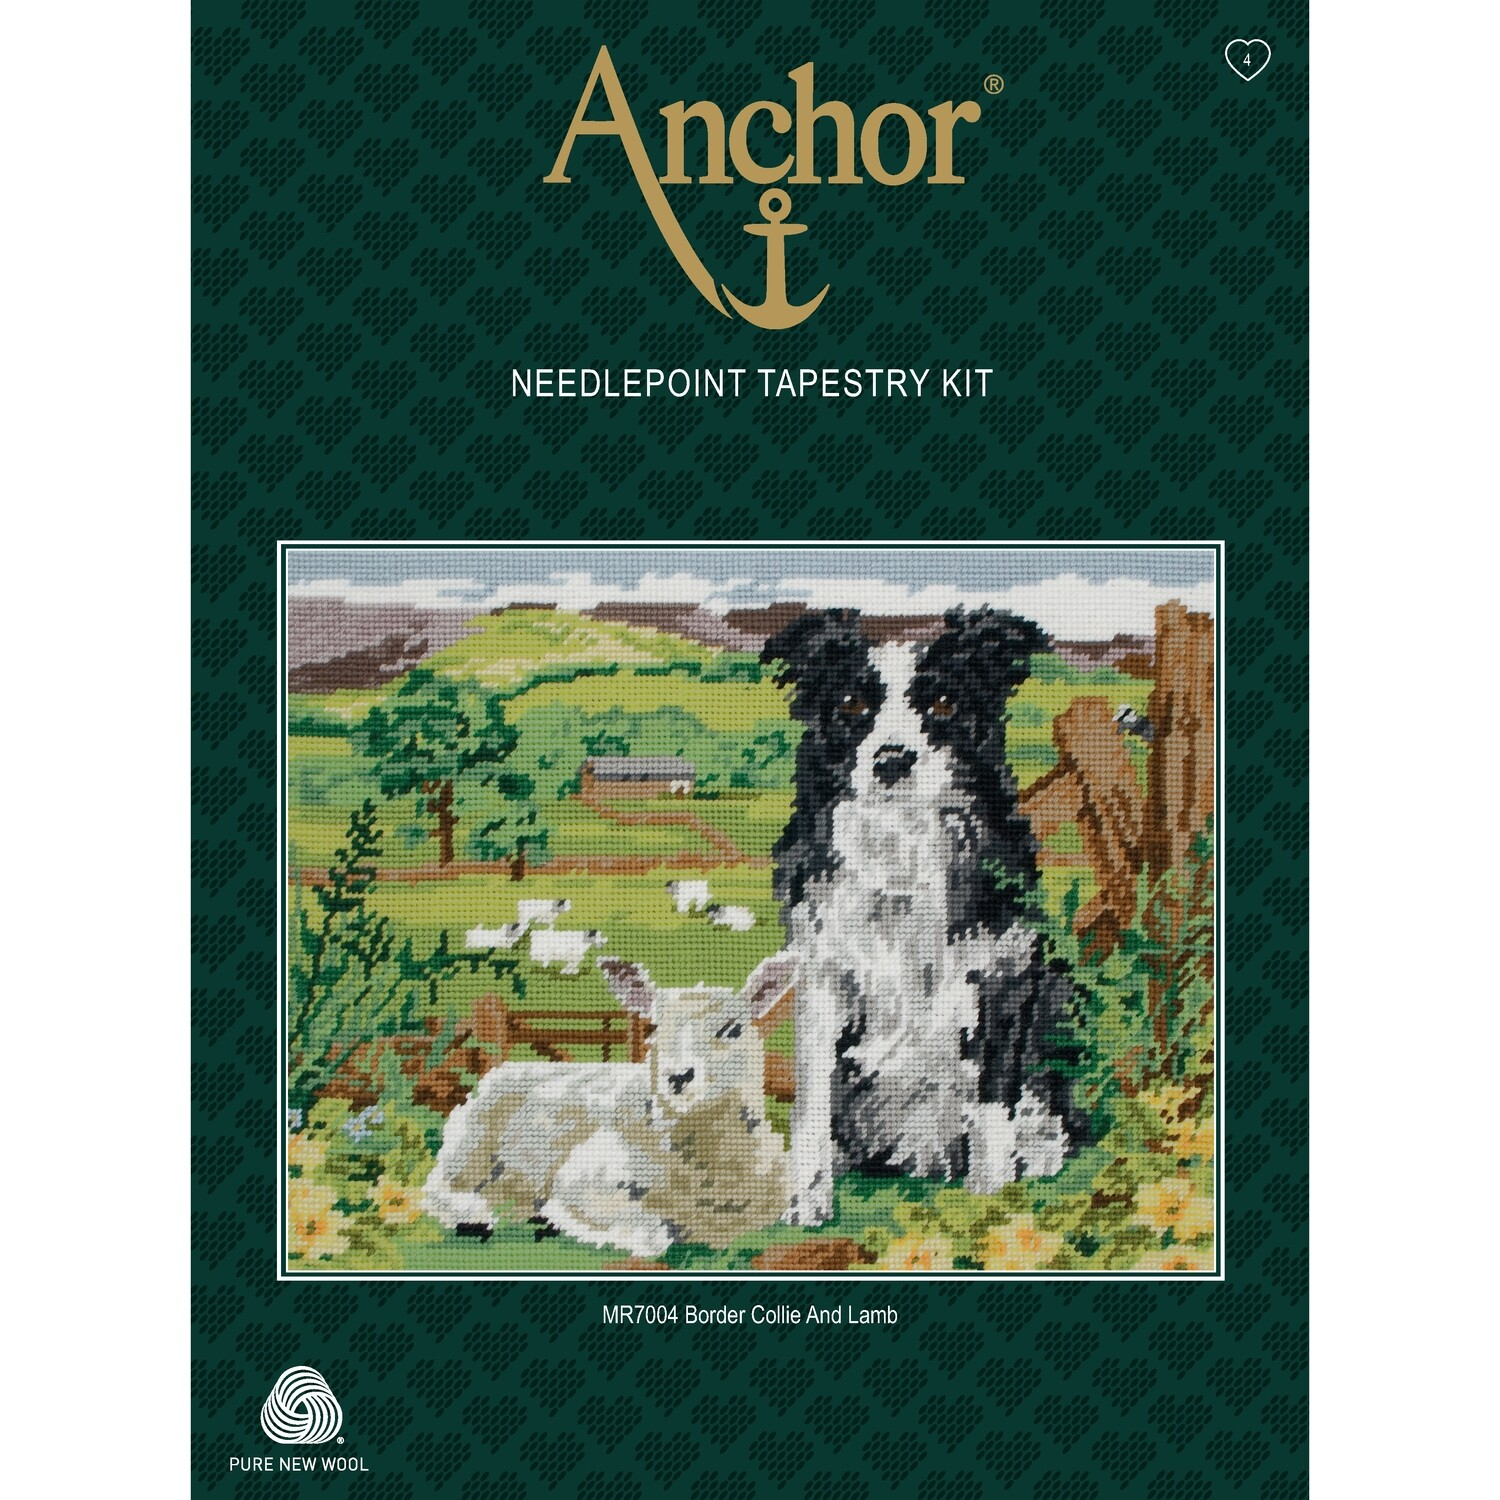 Anchor Essentials Tapestry Kit - Border Collie and Lamb